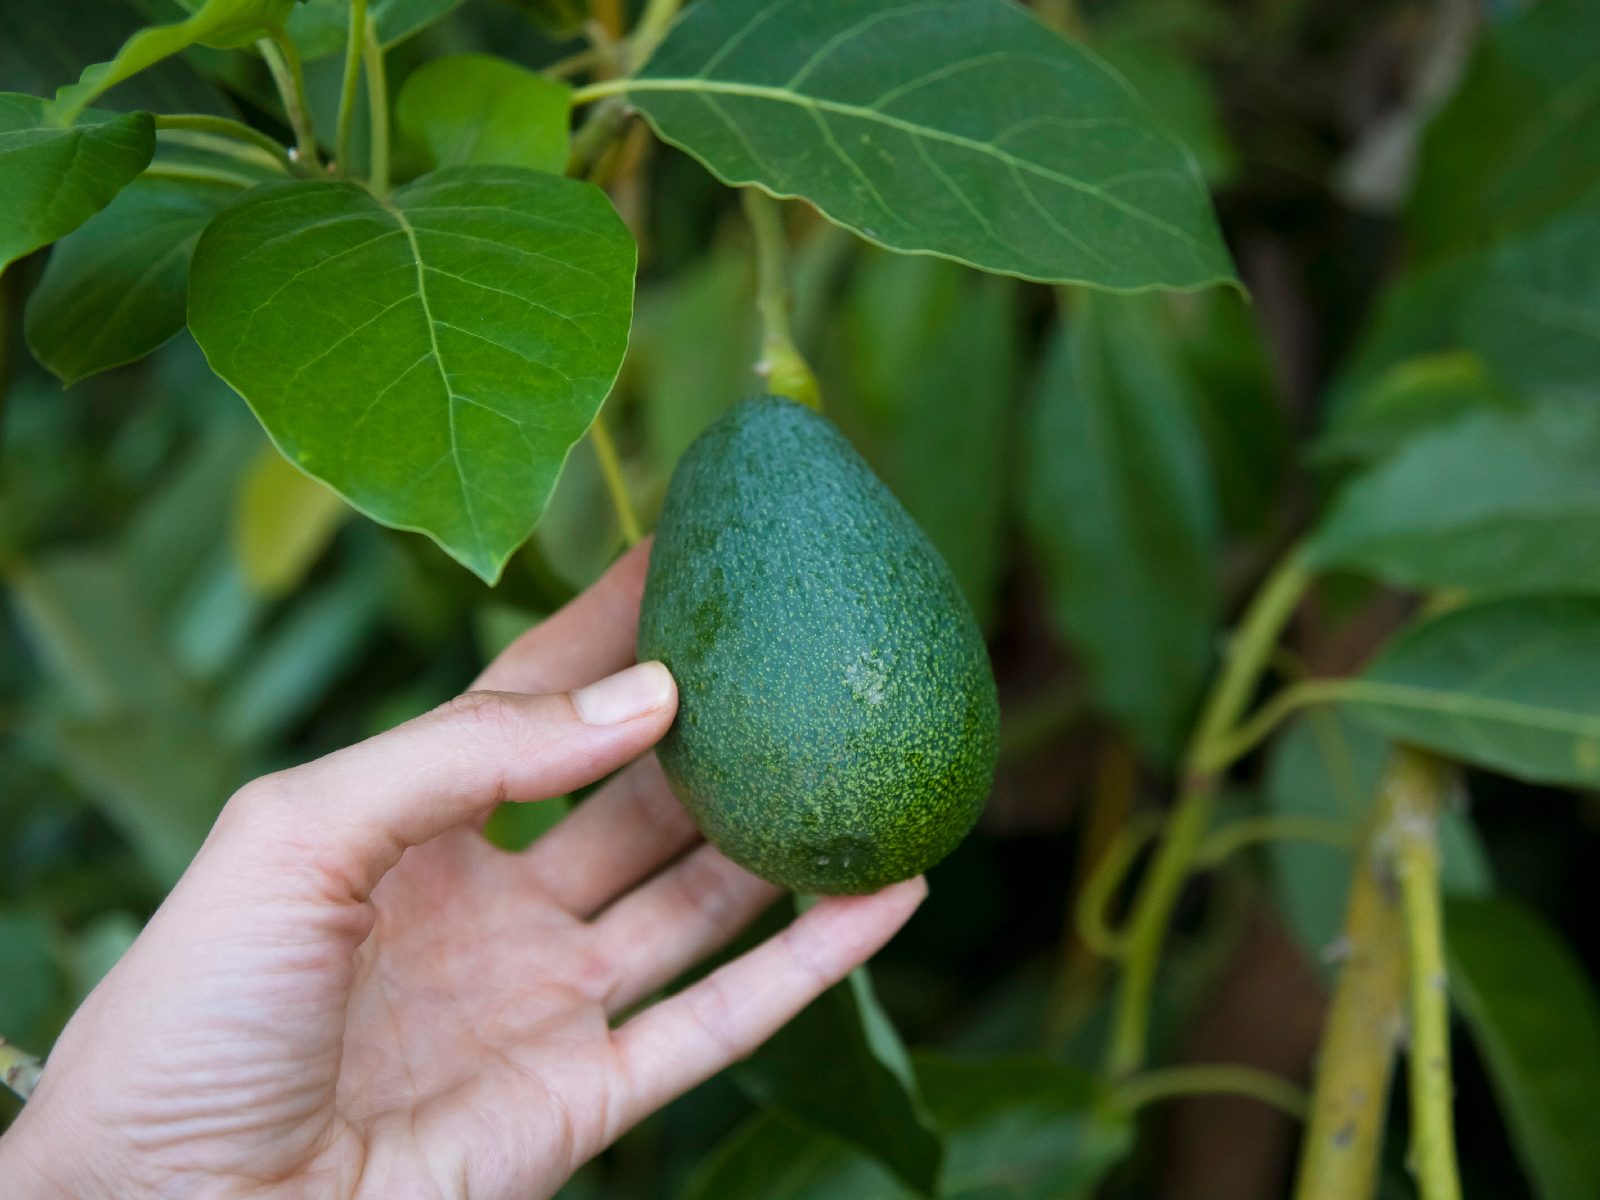 win-avocado-farm-FT-BLOG0719.jpg